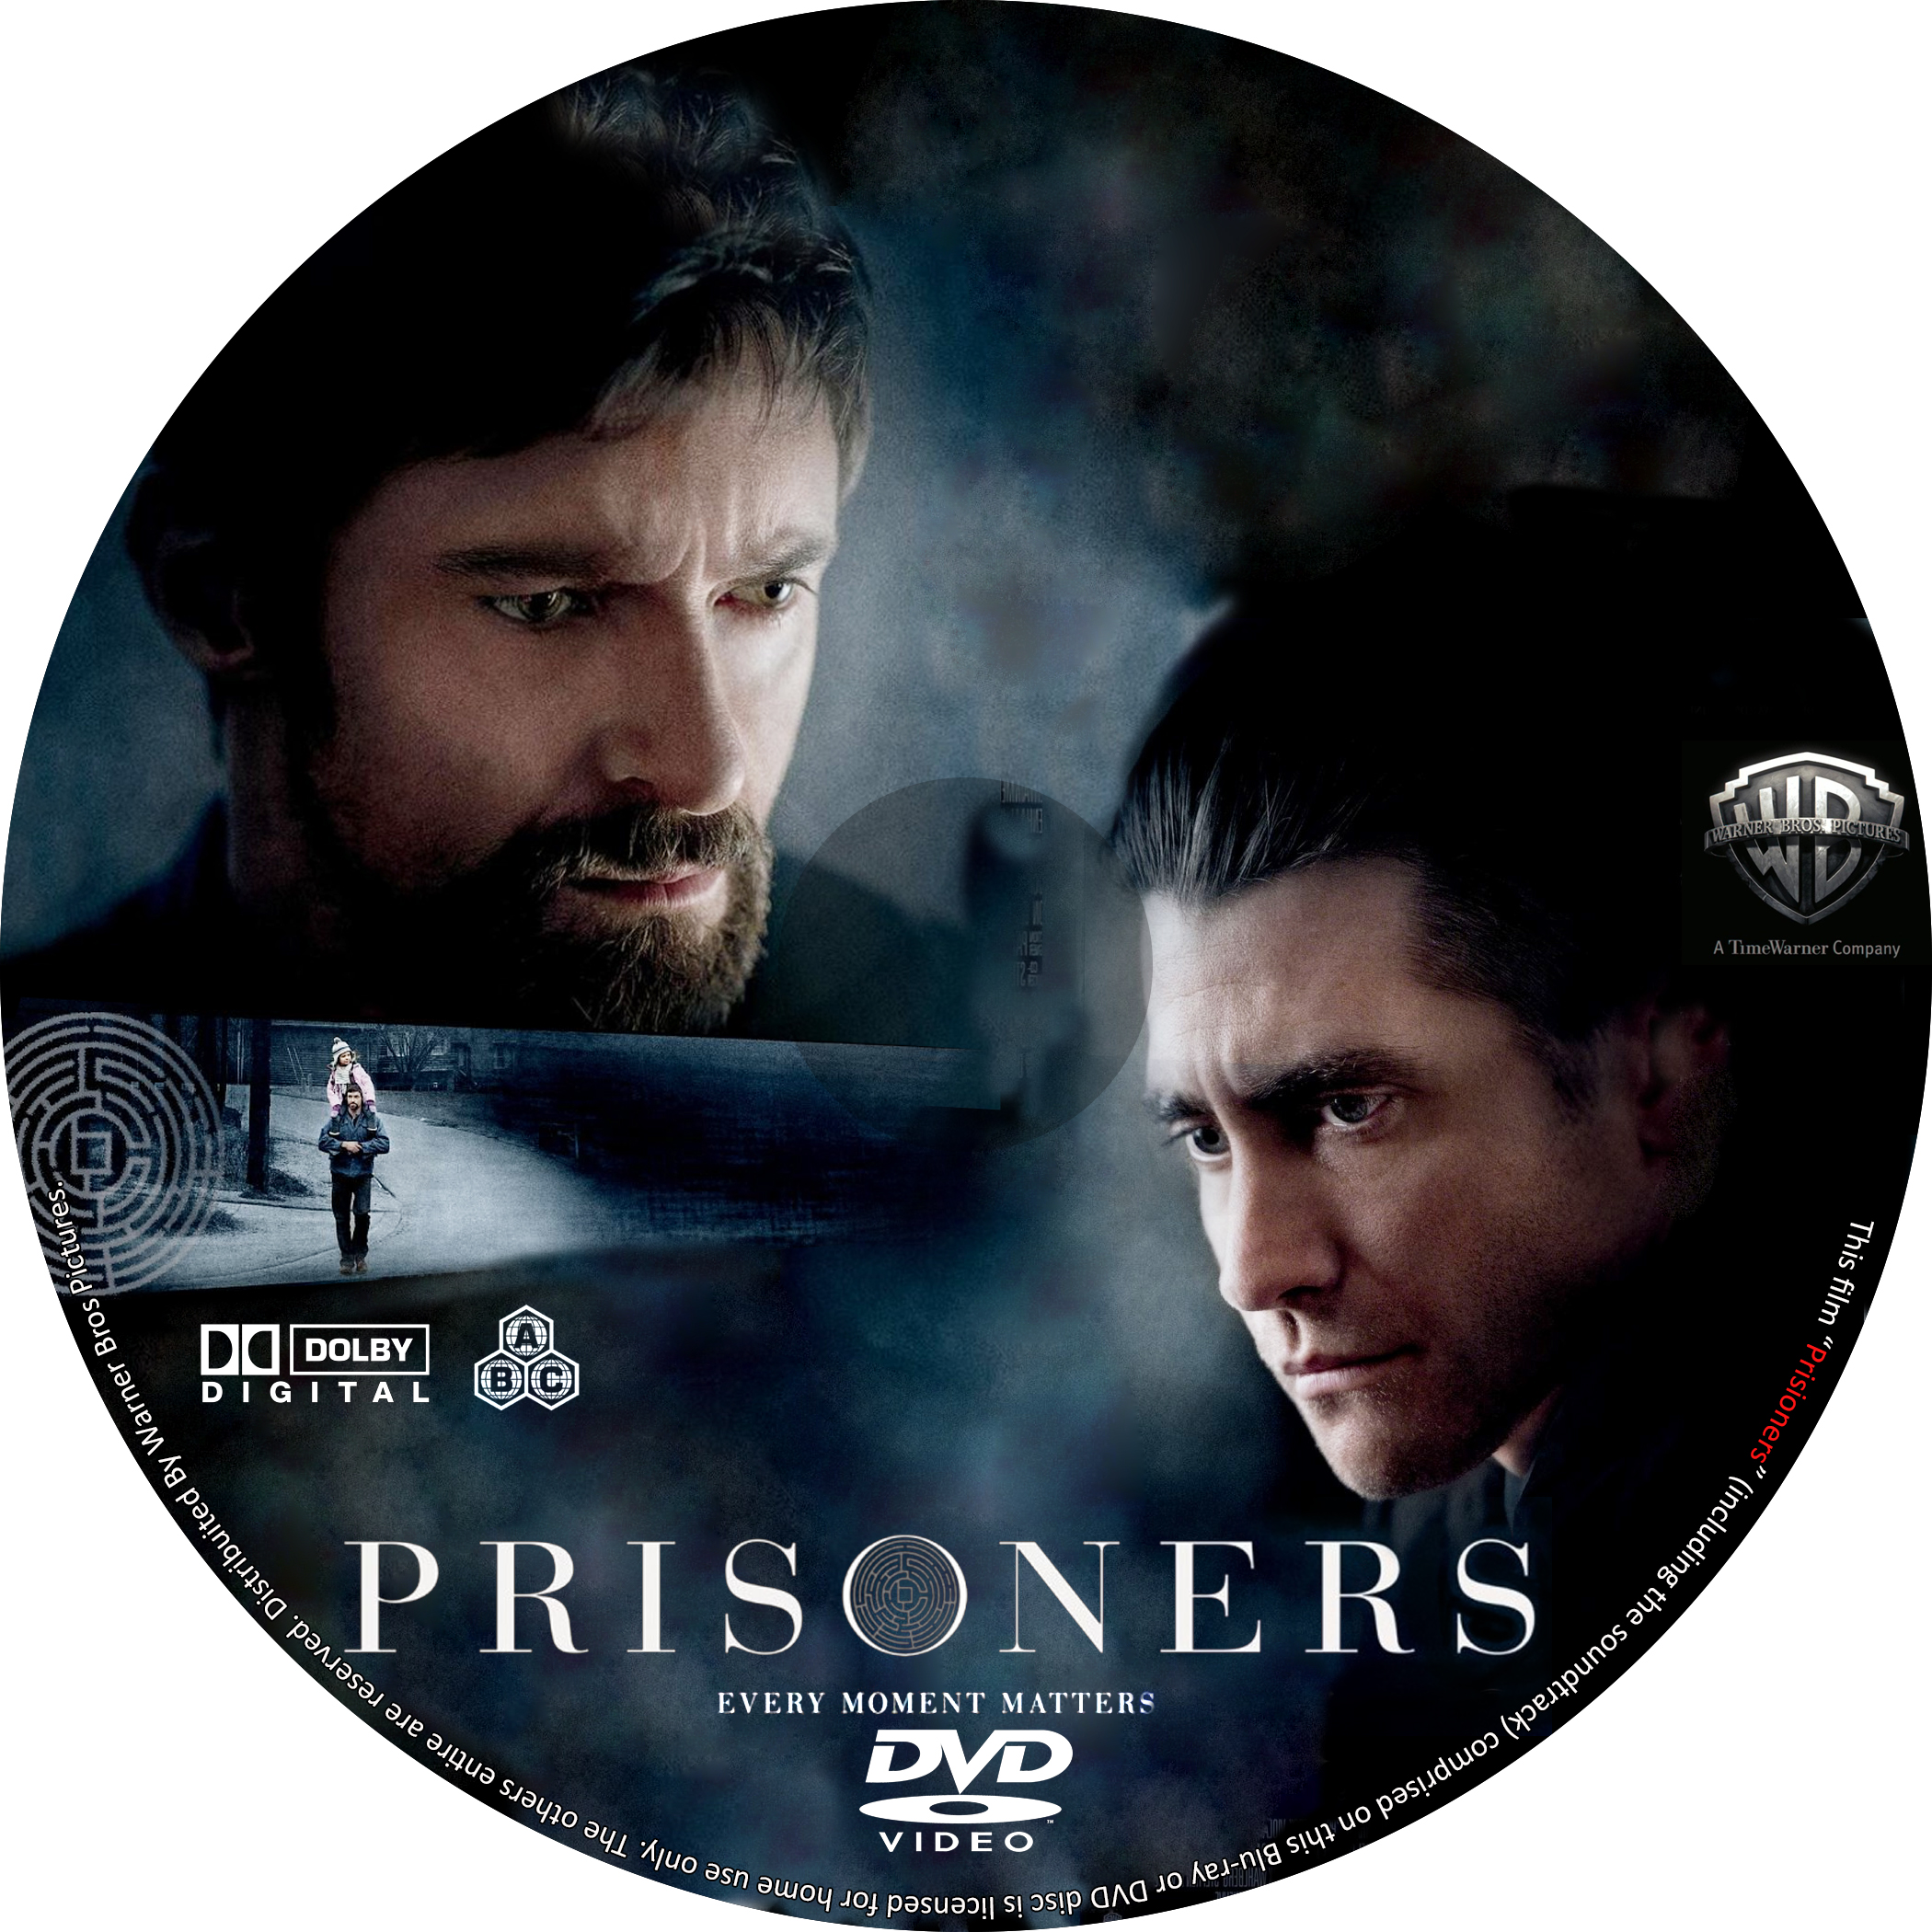 Prisoners Dvd Cover